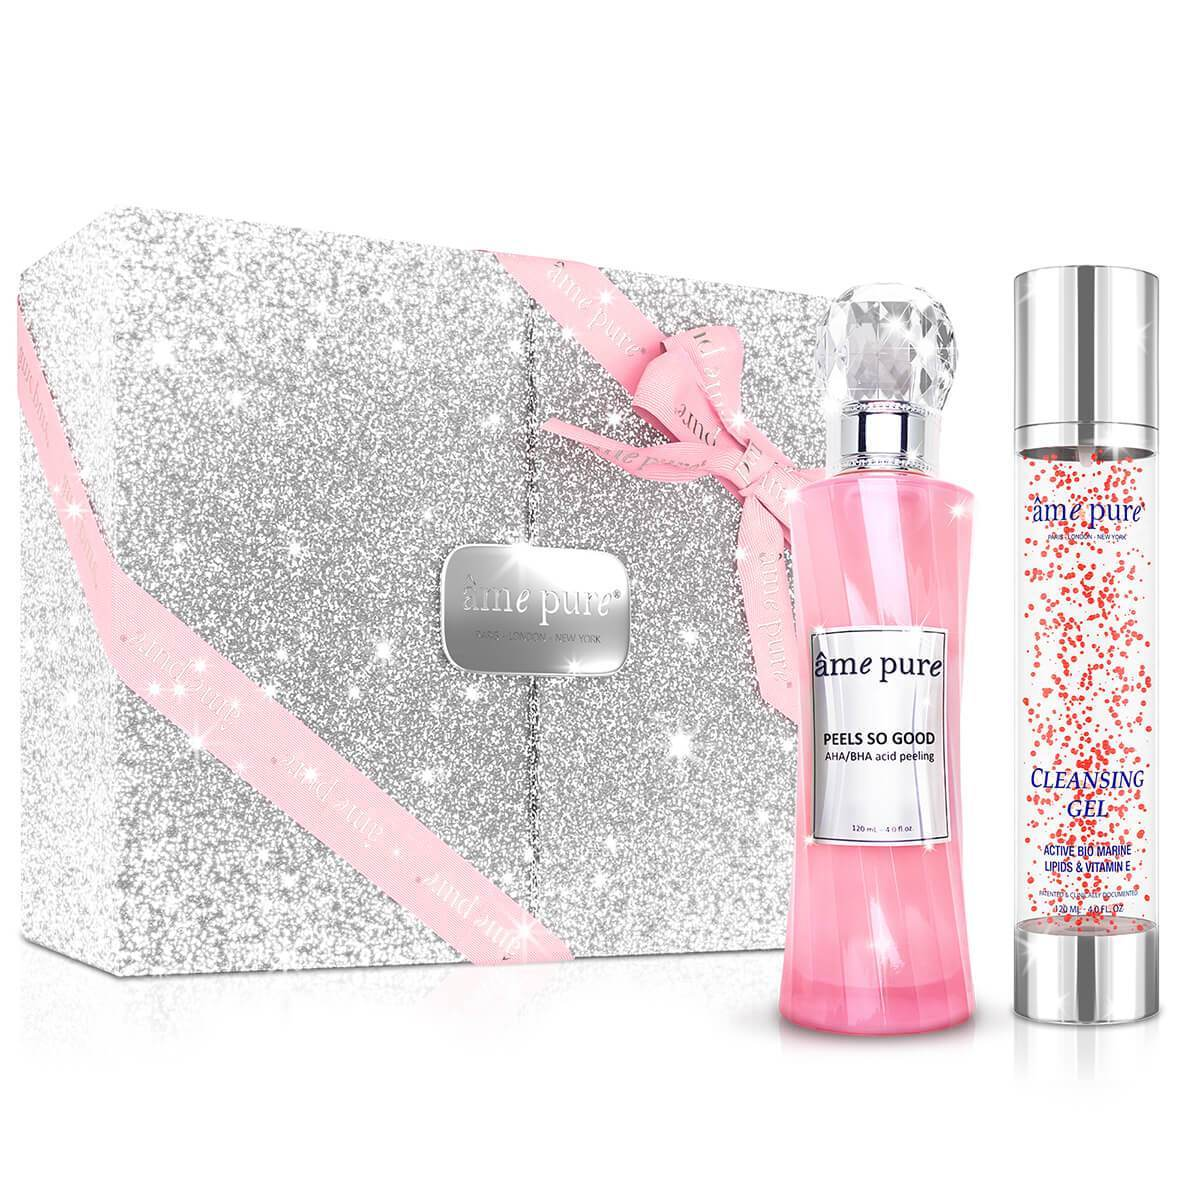 Peels So Good™ & Cleansing Gel + Gift Box